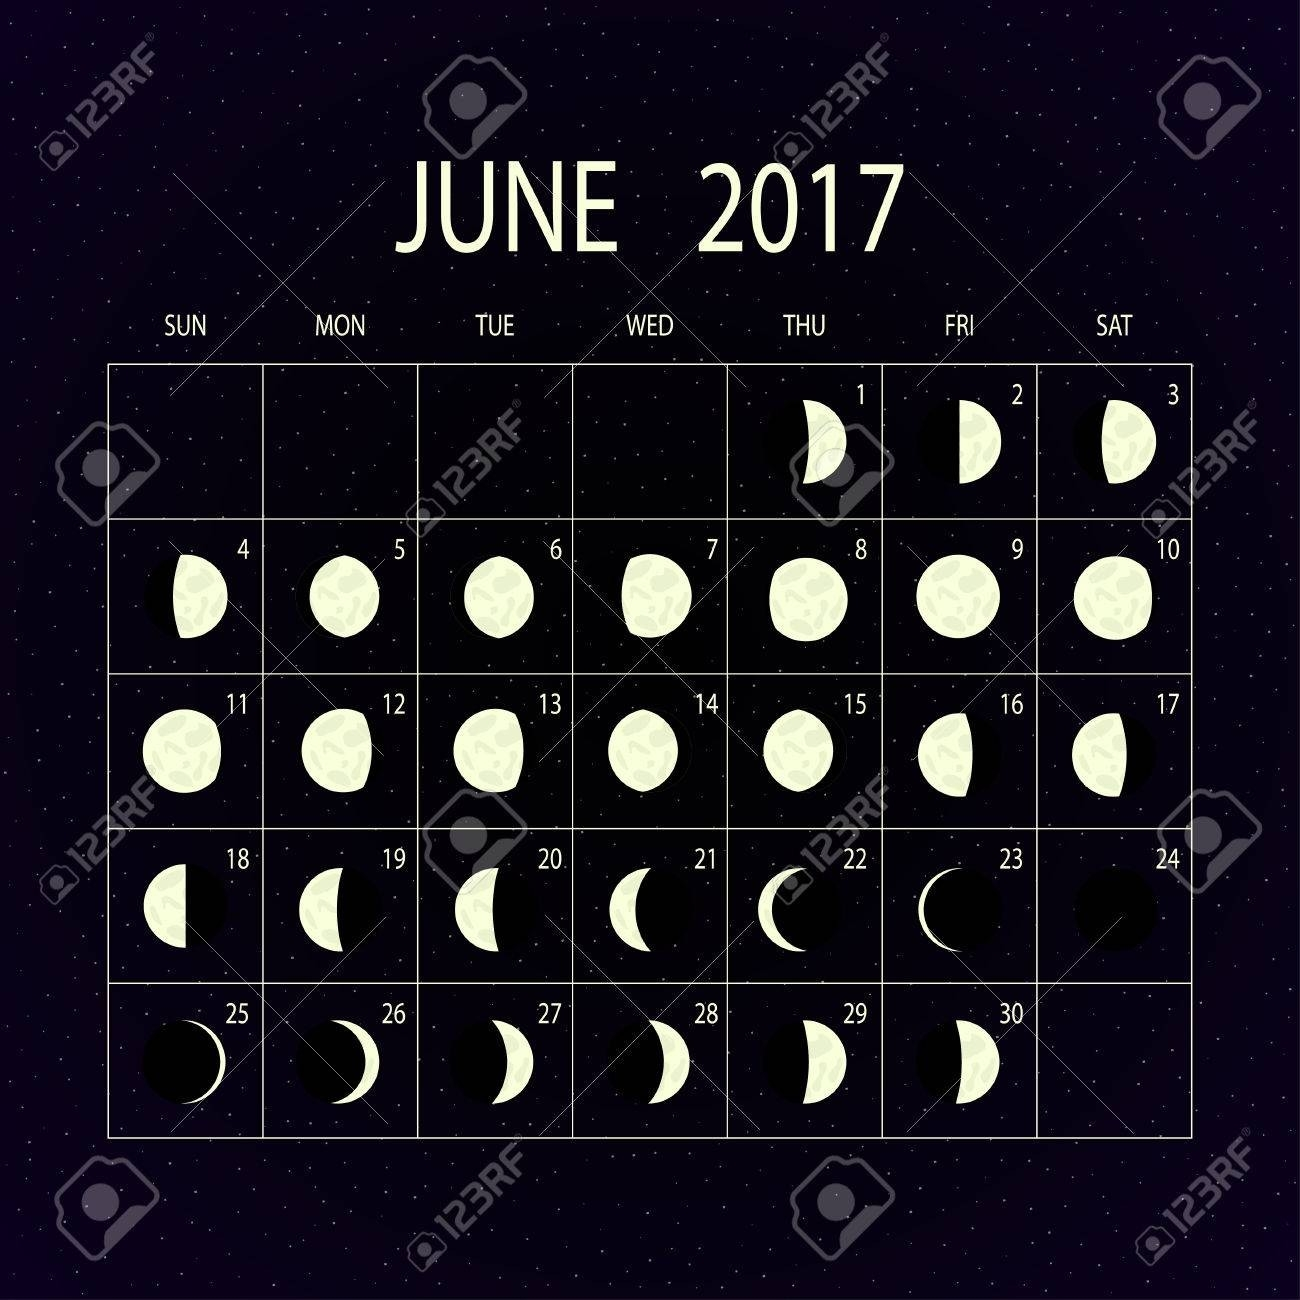 Moon Phases Calendar For 2017 On Night Sky. June. Vector Illustration.  2017 Moon Phase October